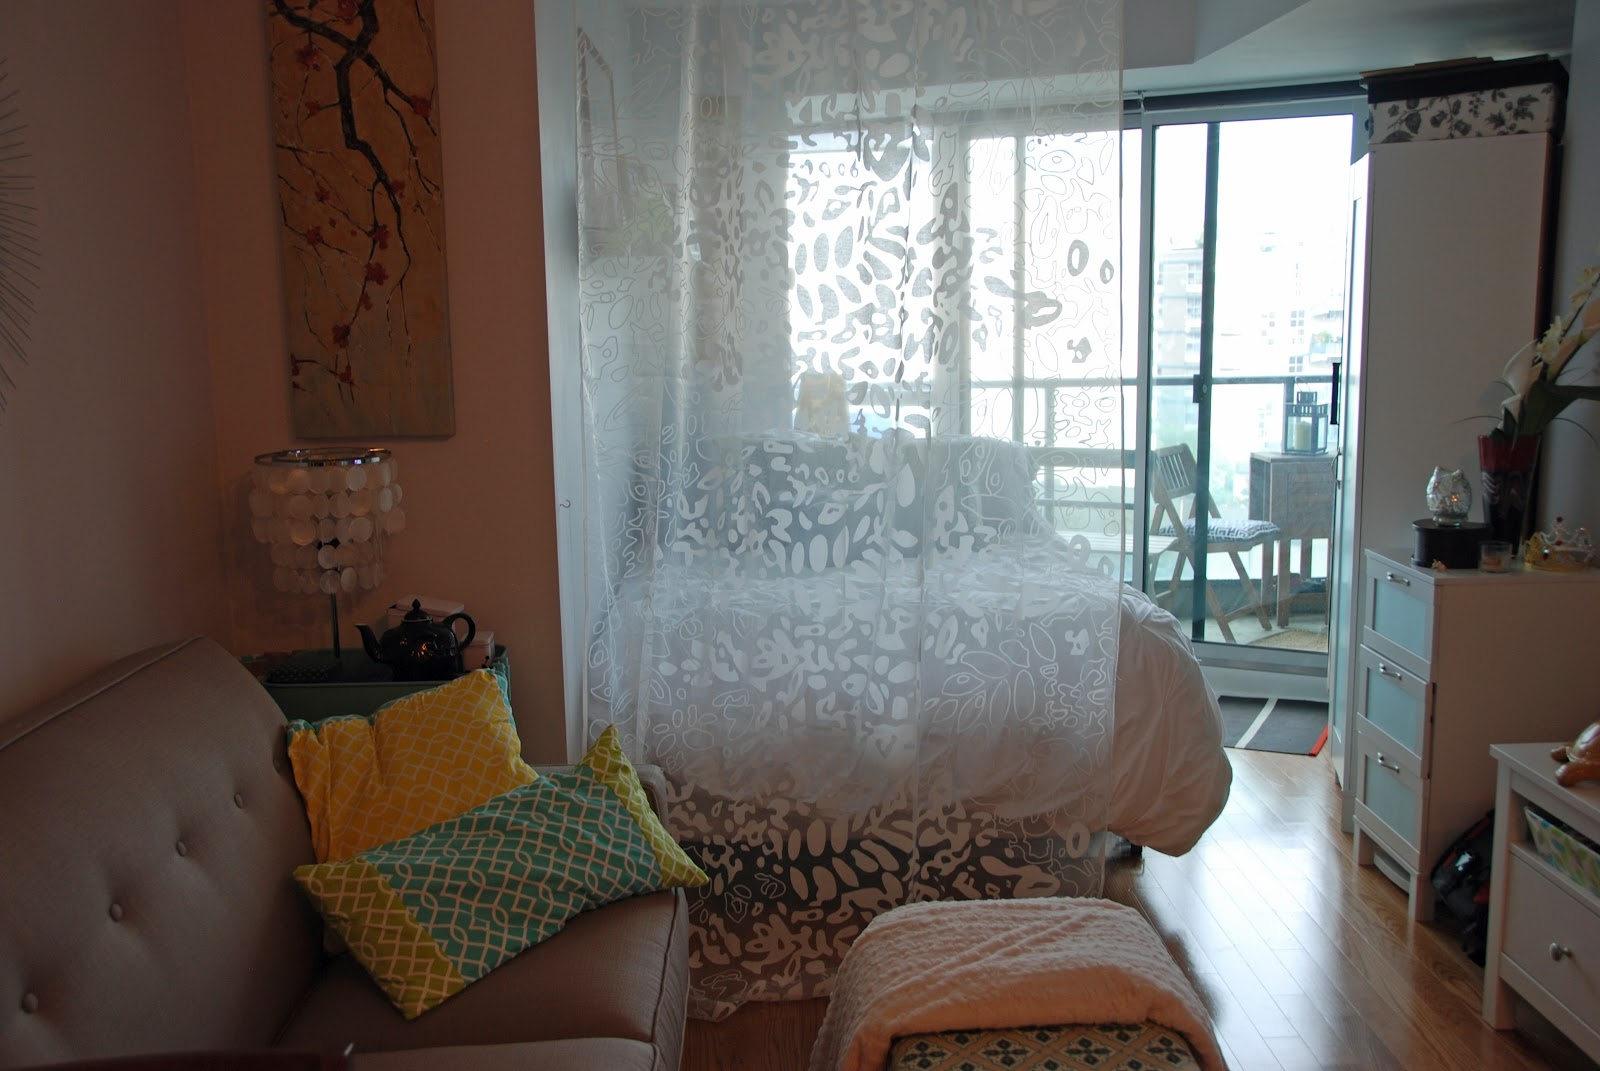 Decorating Mesmerizing Temptation Temporary Room Dividers Within Room Curtain Divider IKEA (Image 6 of 25)